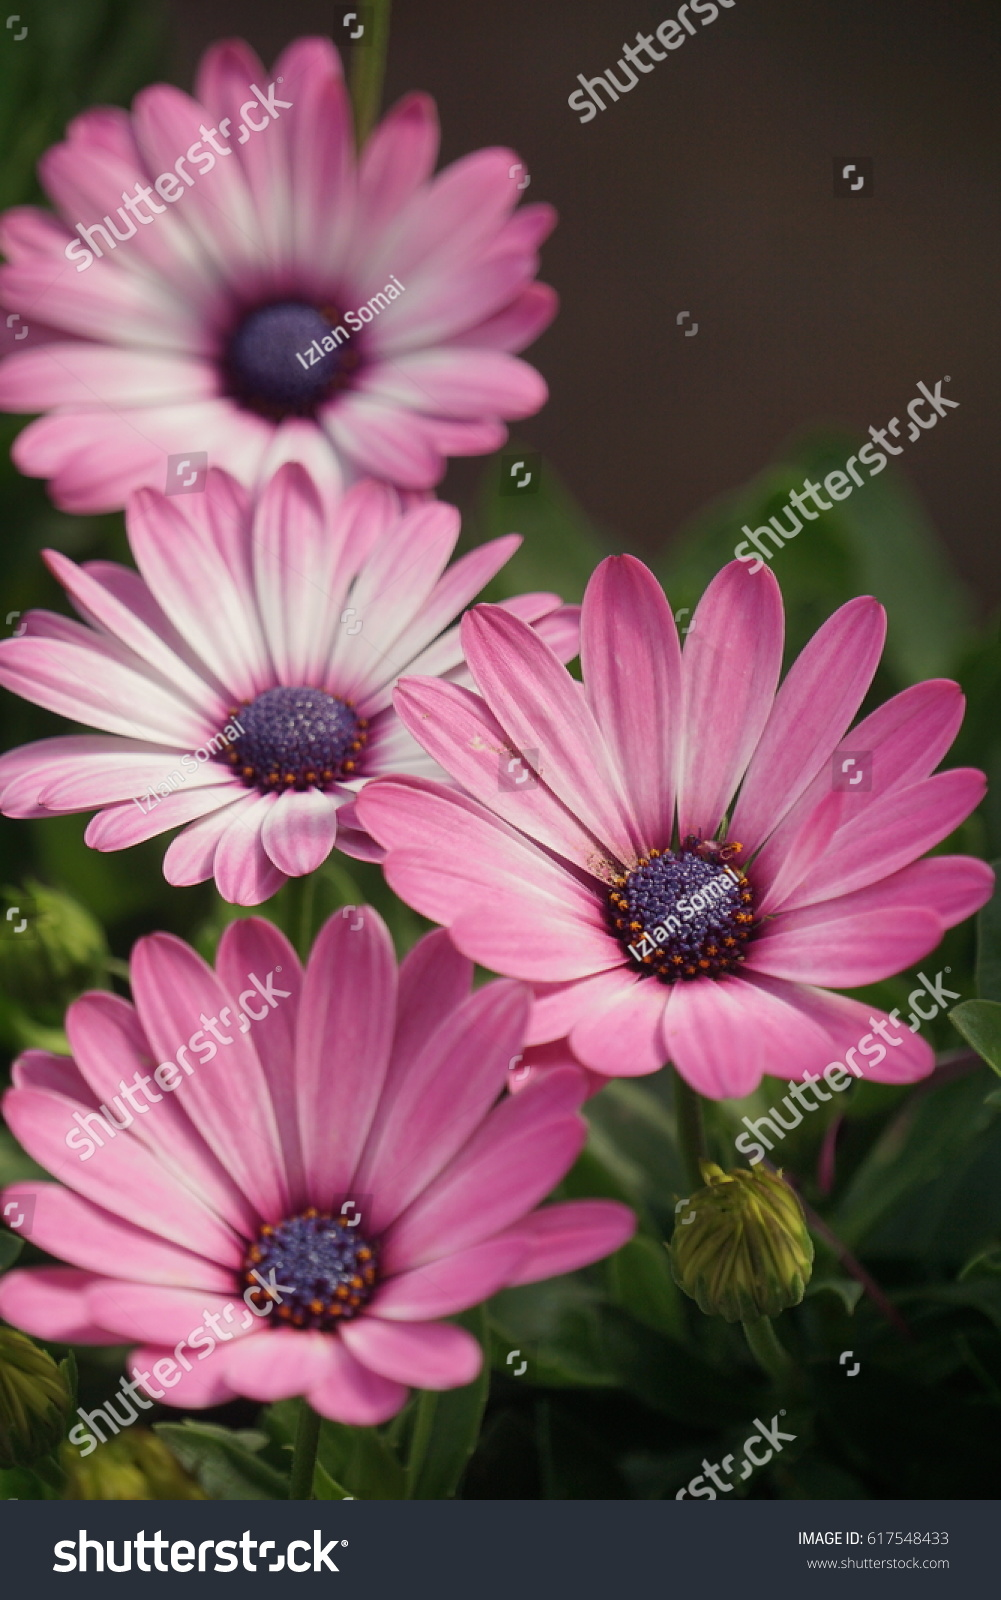 Daisy Flower Pink Color Stock Photo Royalty Free 617548433